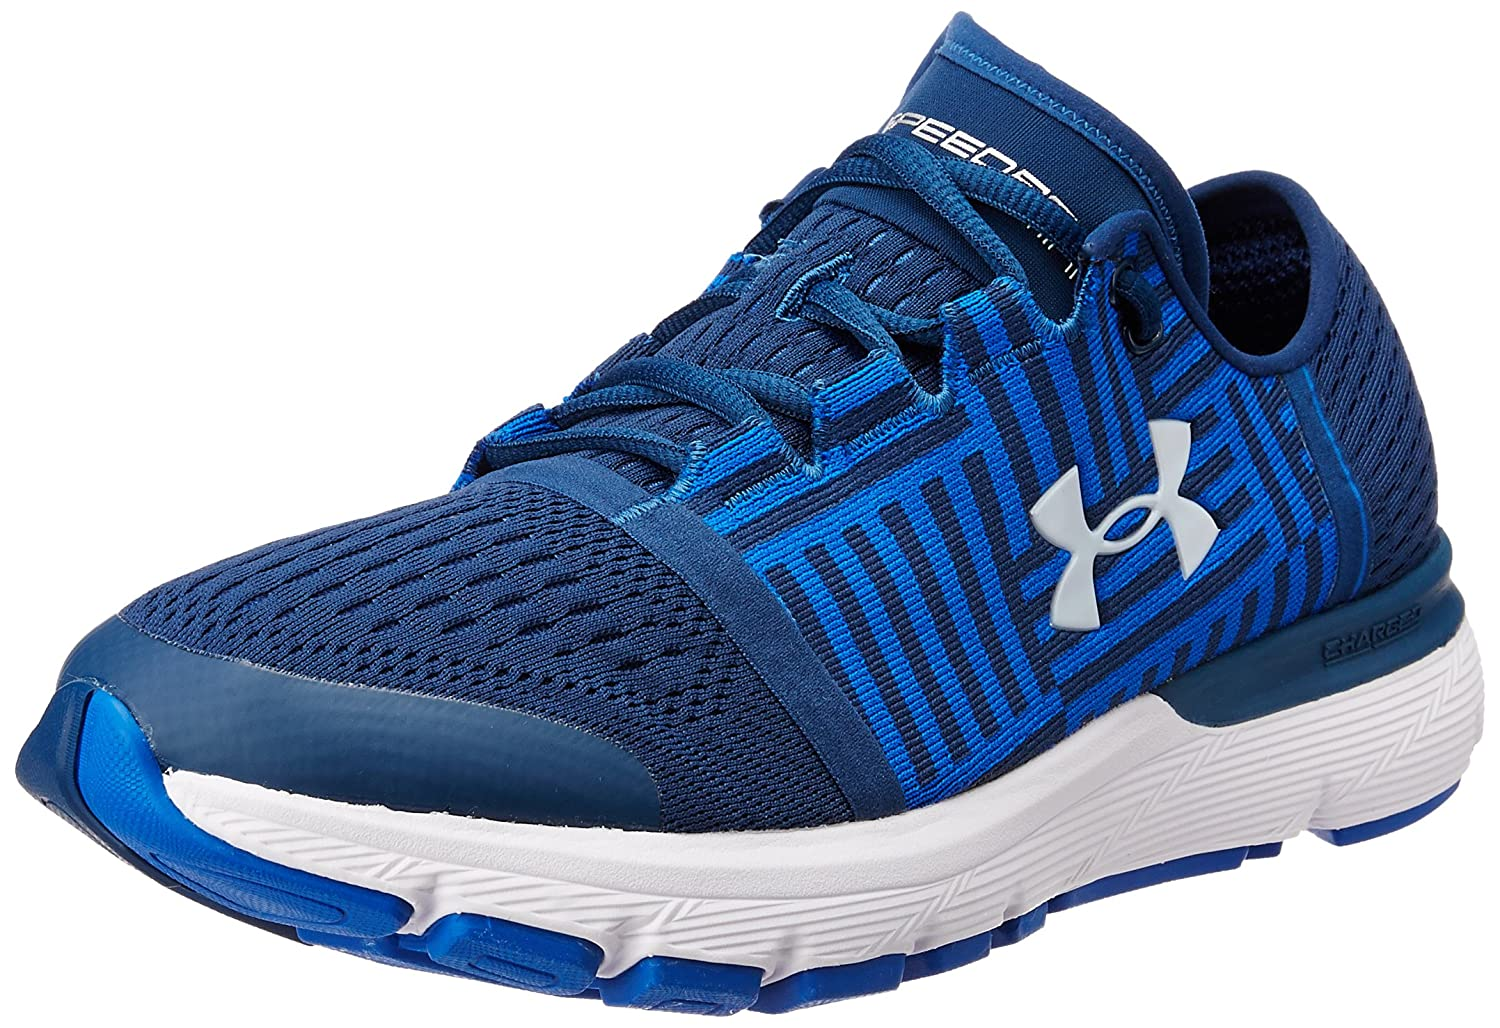 Under Armour Herren Speedform Gemini 3 Laufschuhe    6d38cc